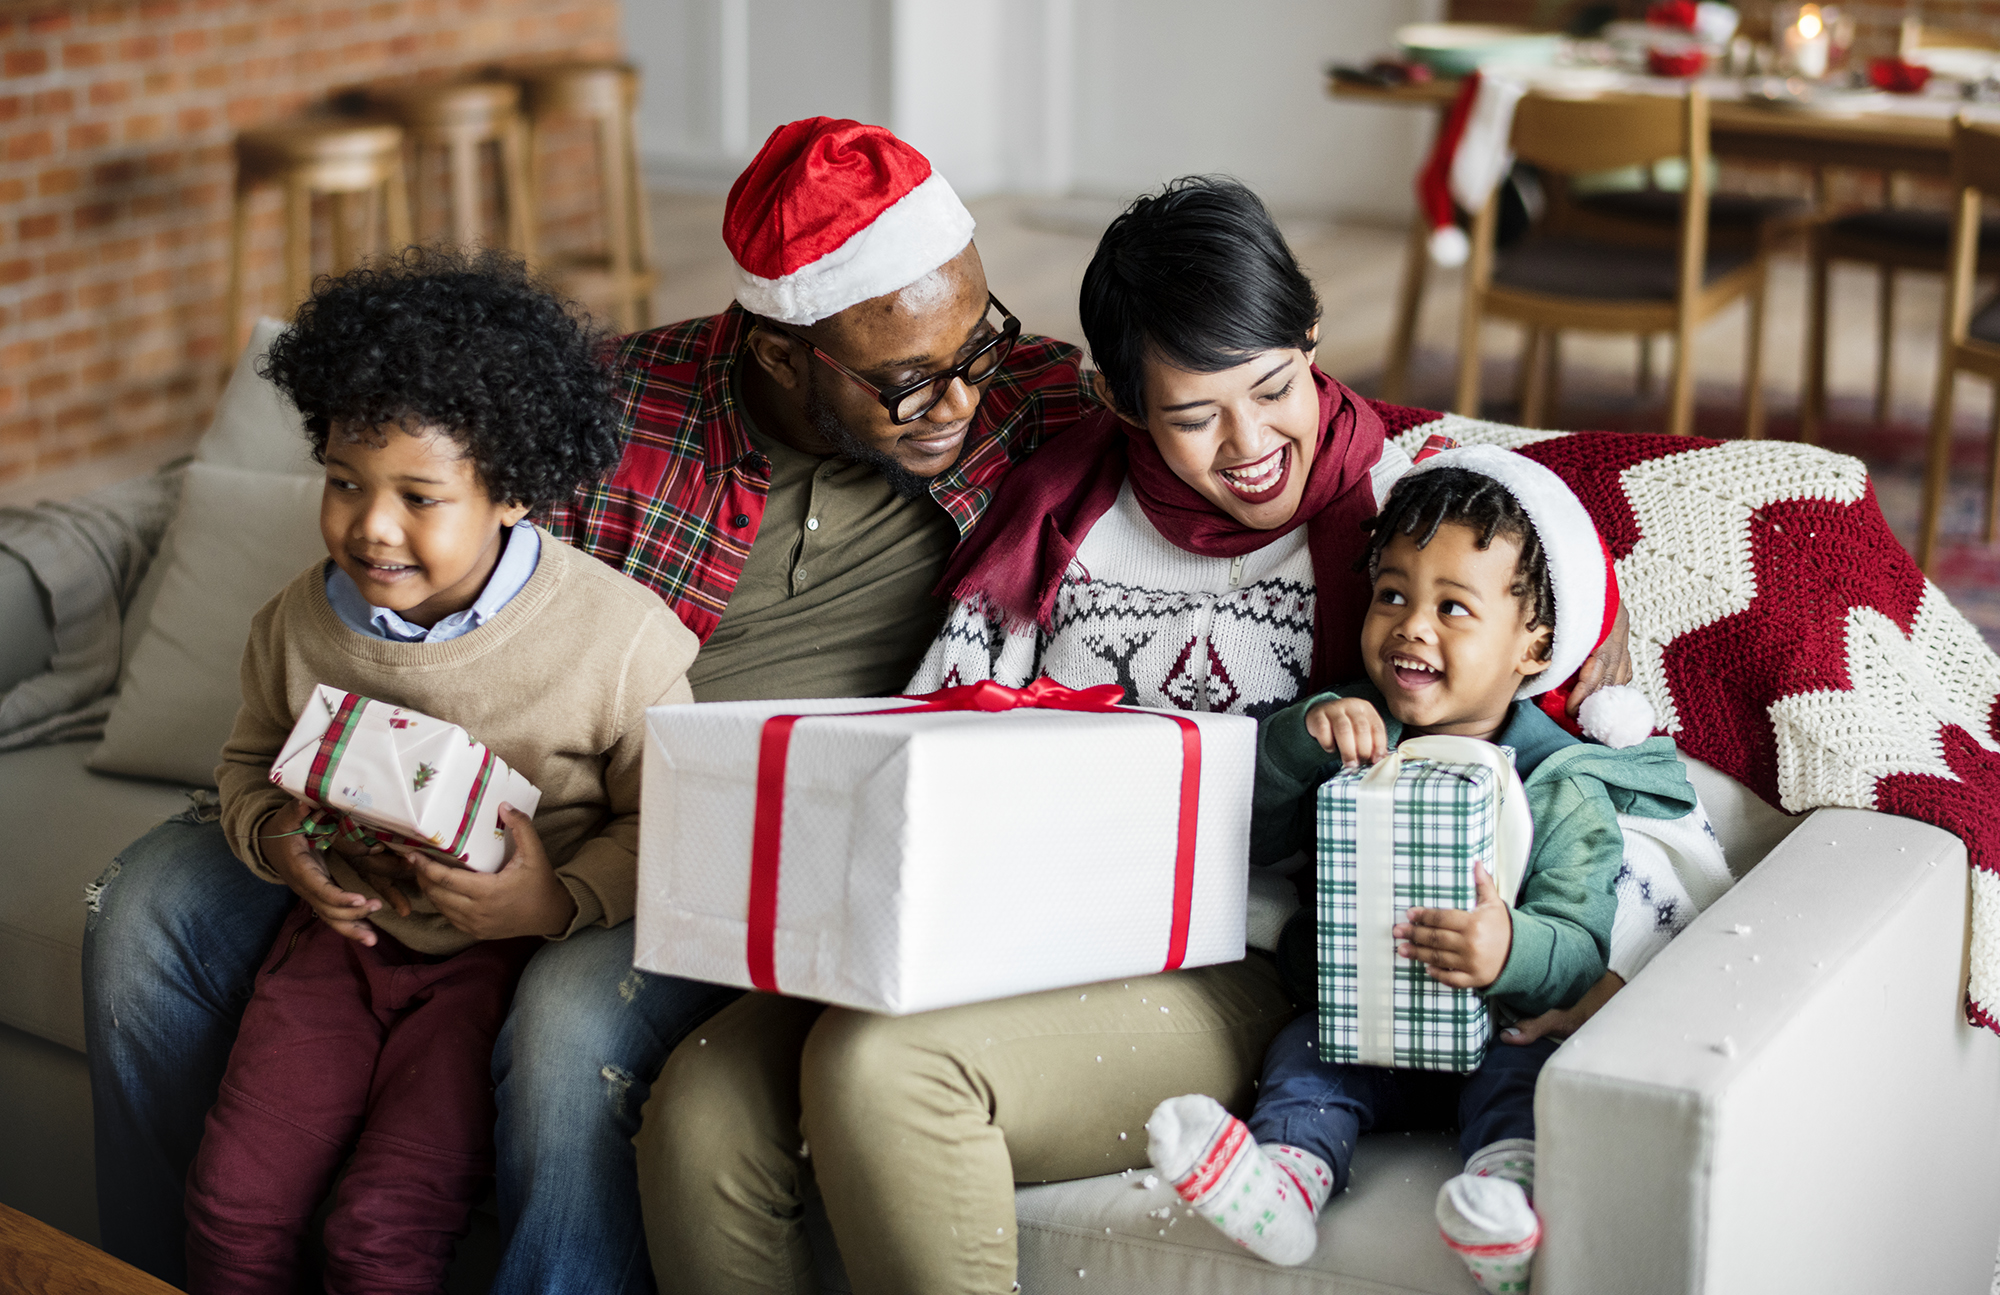 a mother, father, and 2 young children sit on the couch as a family, wearing santa hats and holding wrapped gifts in their laps, looking like a happy family enjoying a calm Christmas without stress, meltdowns, or tantrums